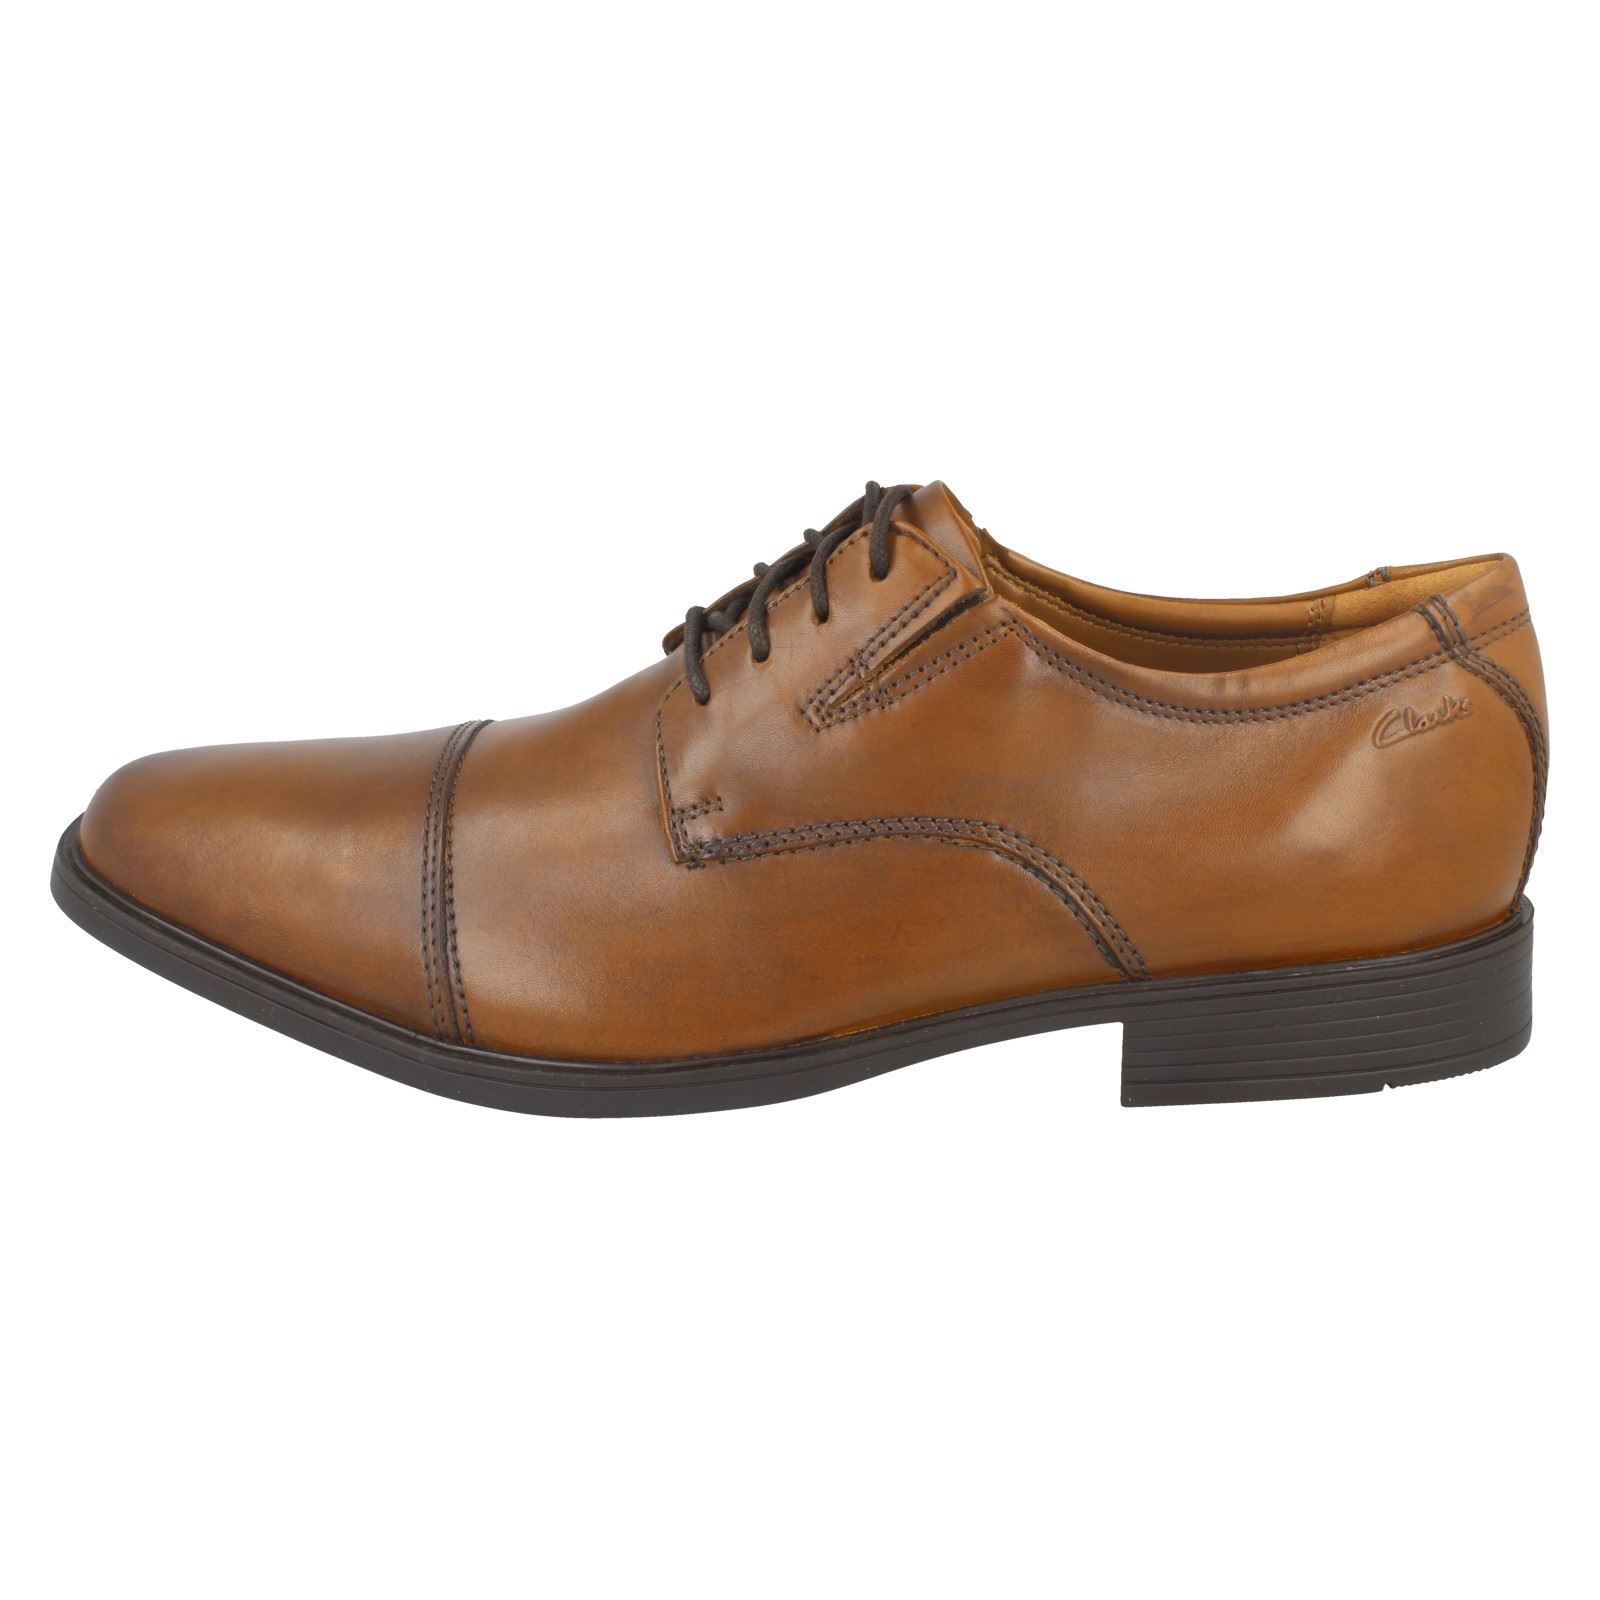 Mens-Clarks-Formal-Lace-Up-Shoes-Tilden-Cap thumbnail 25